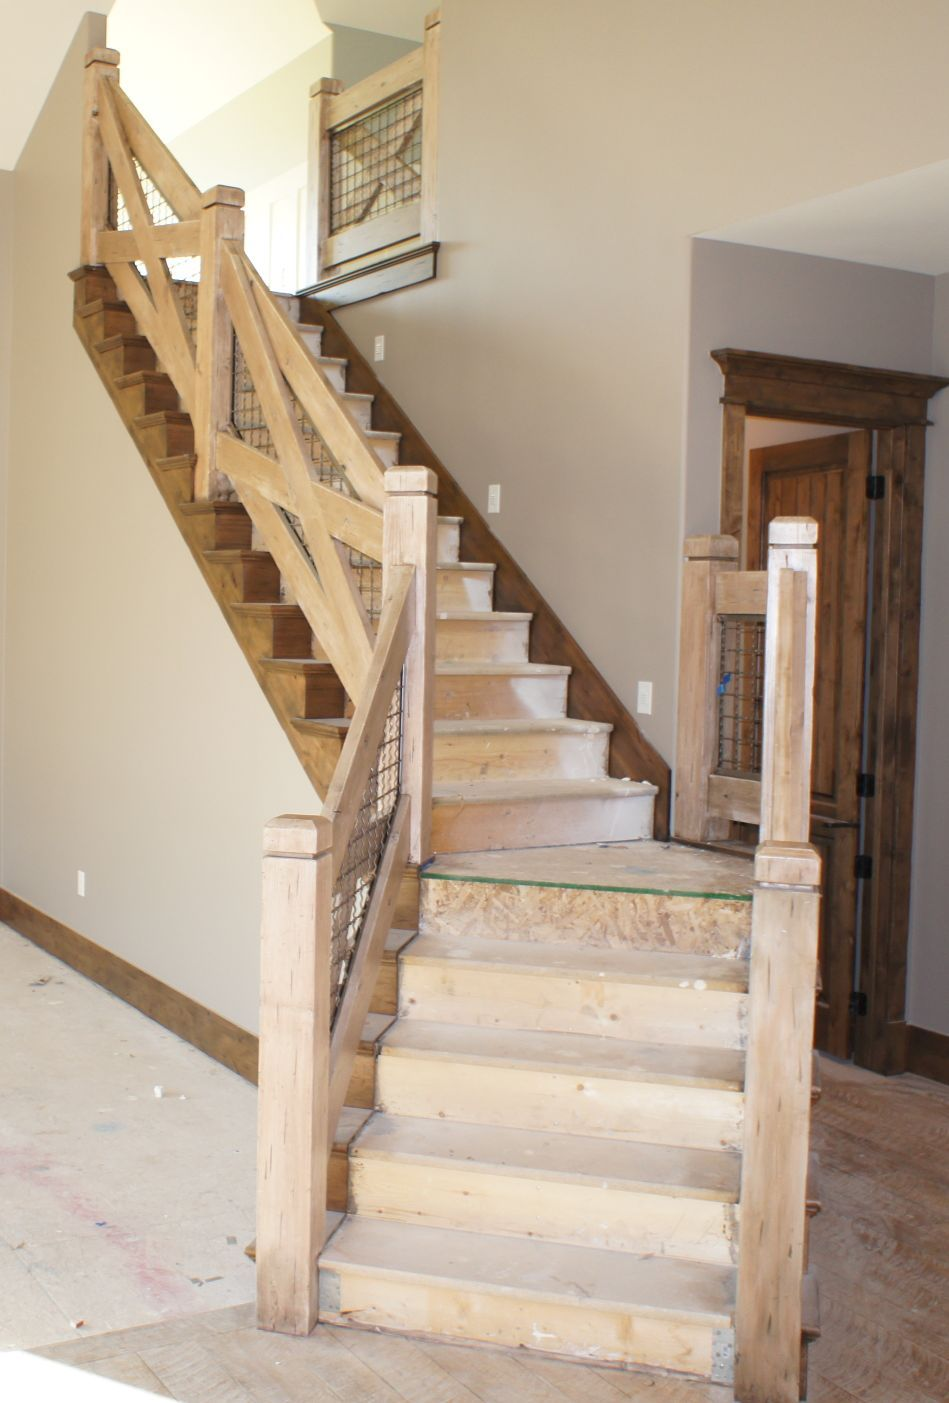 Best Low Cost Stair Railing Ideas 14465 Farmhouse Stairs 640 x 480